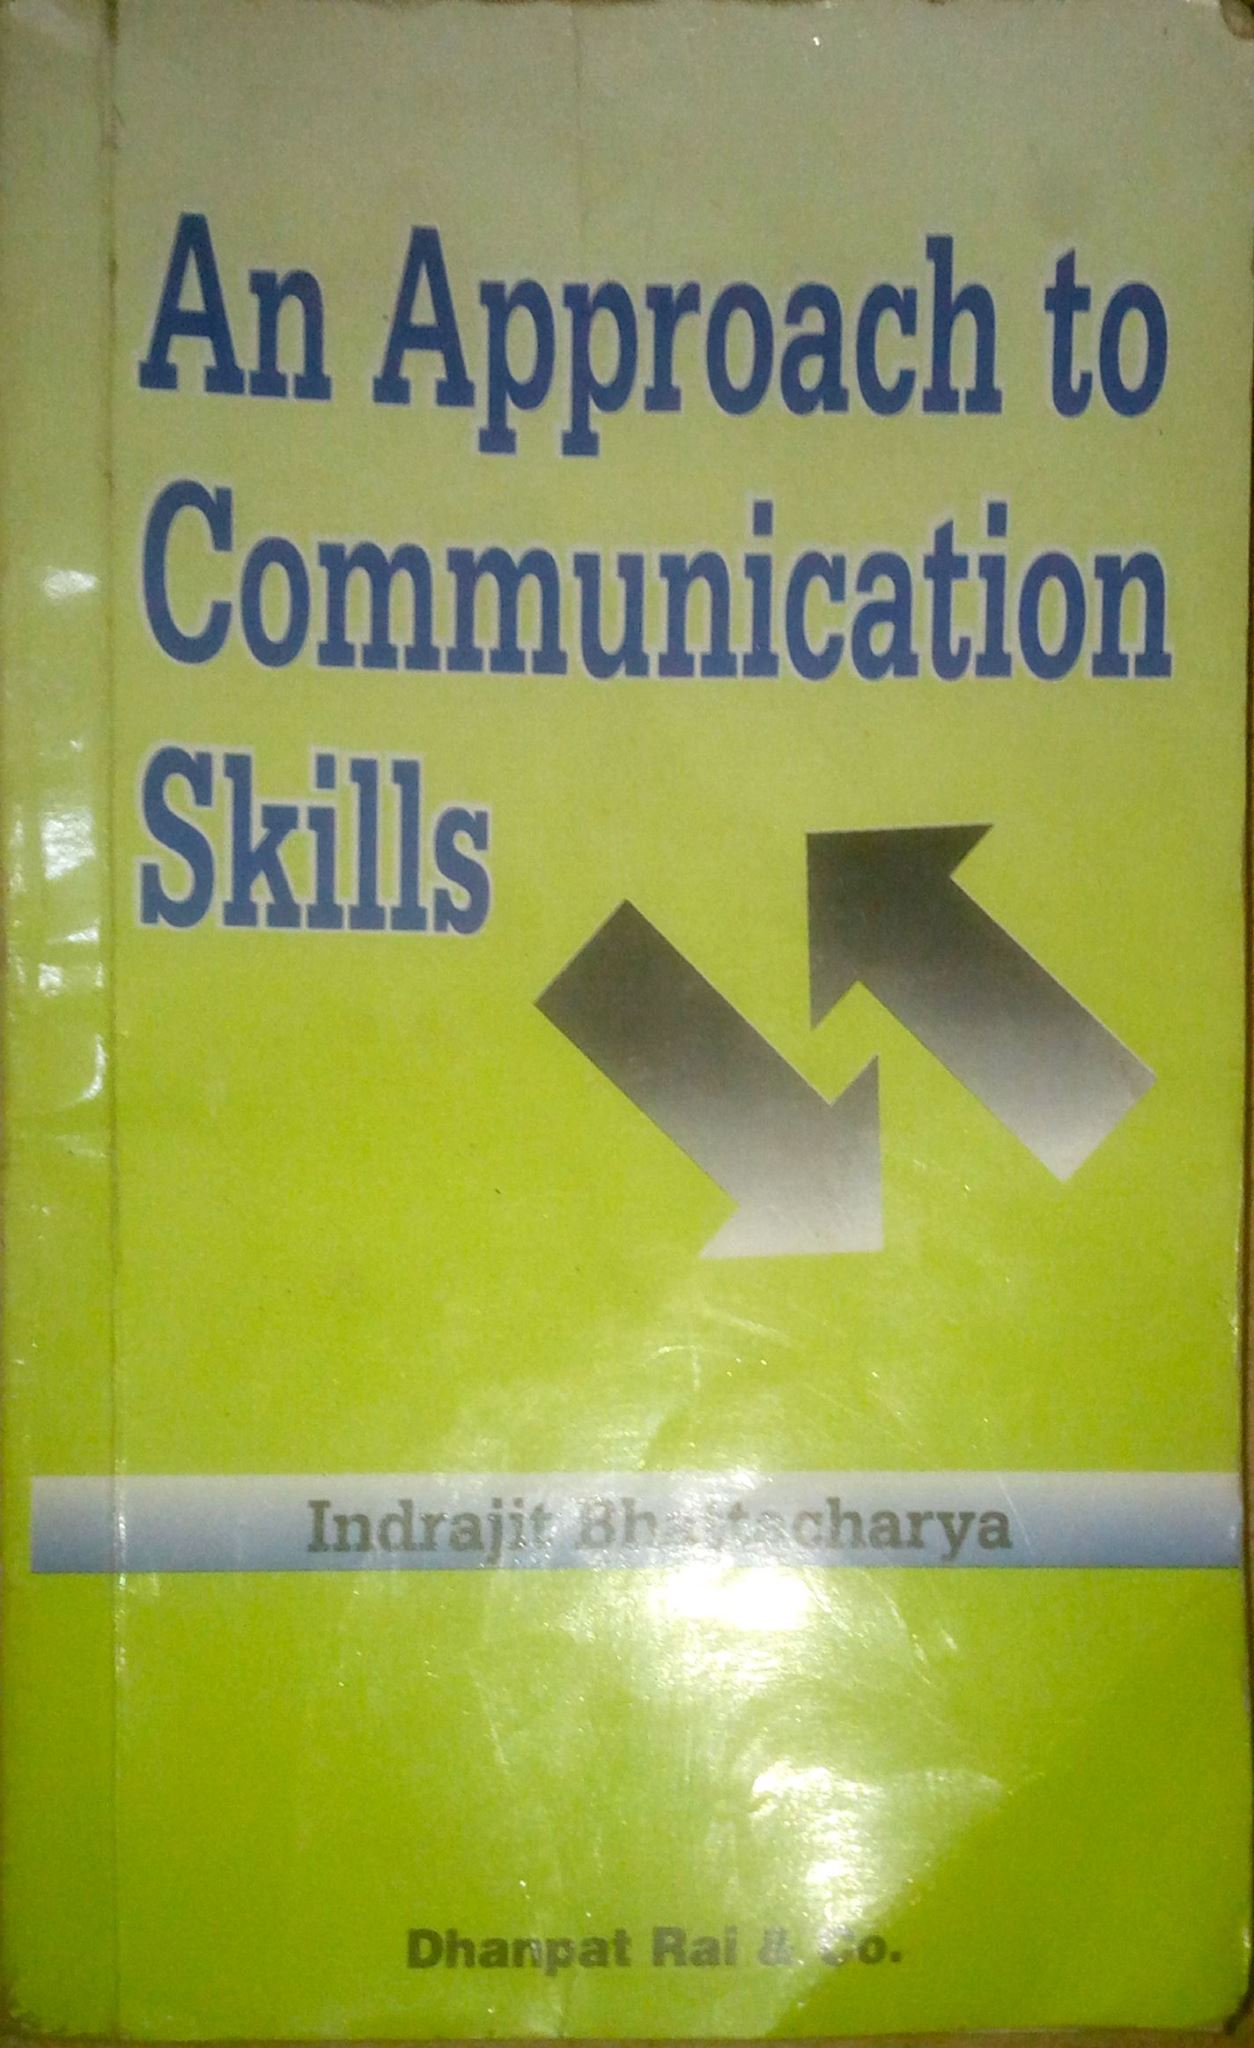 Communication Skills Indrajit Bhattacharya